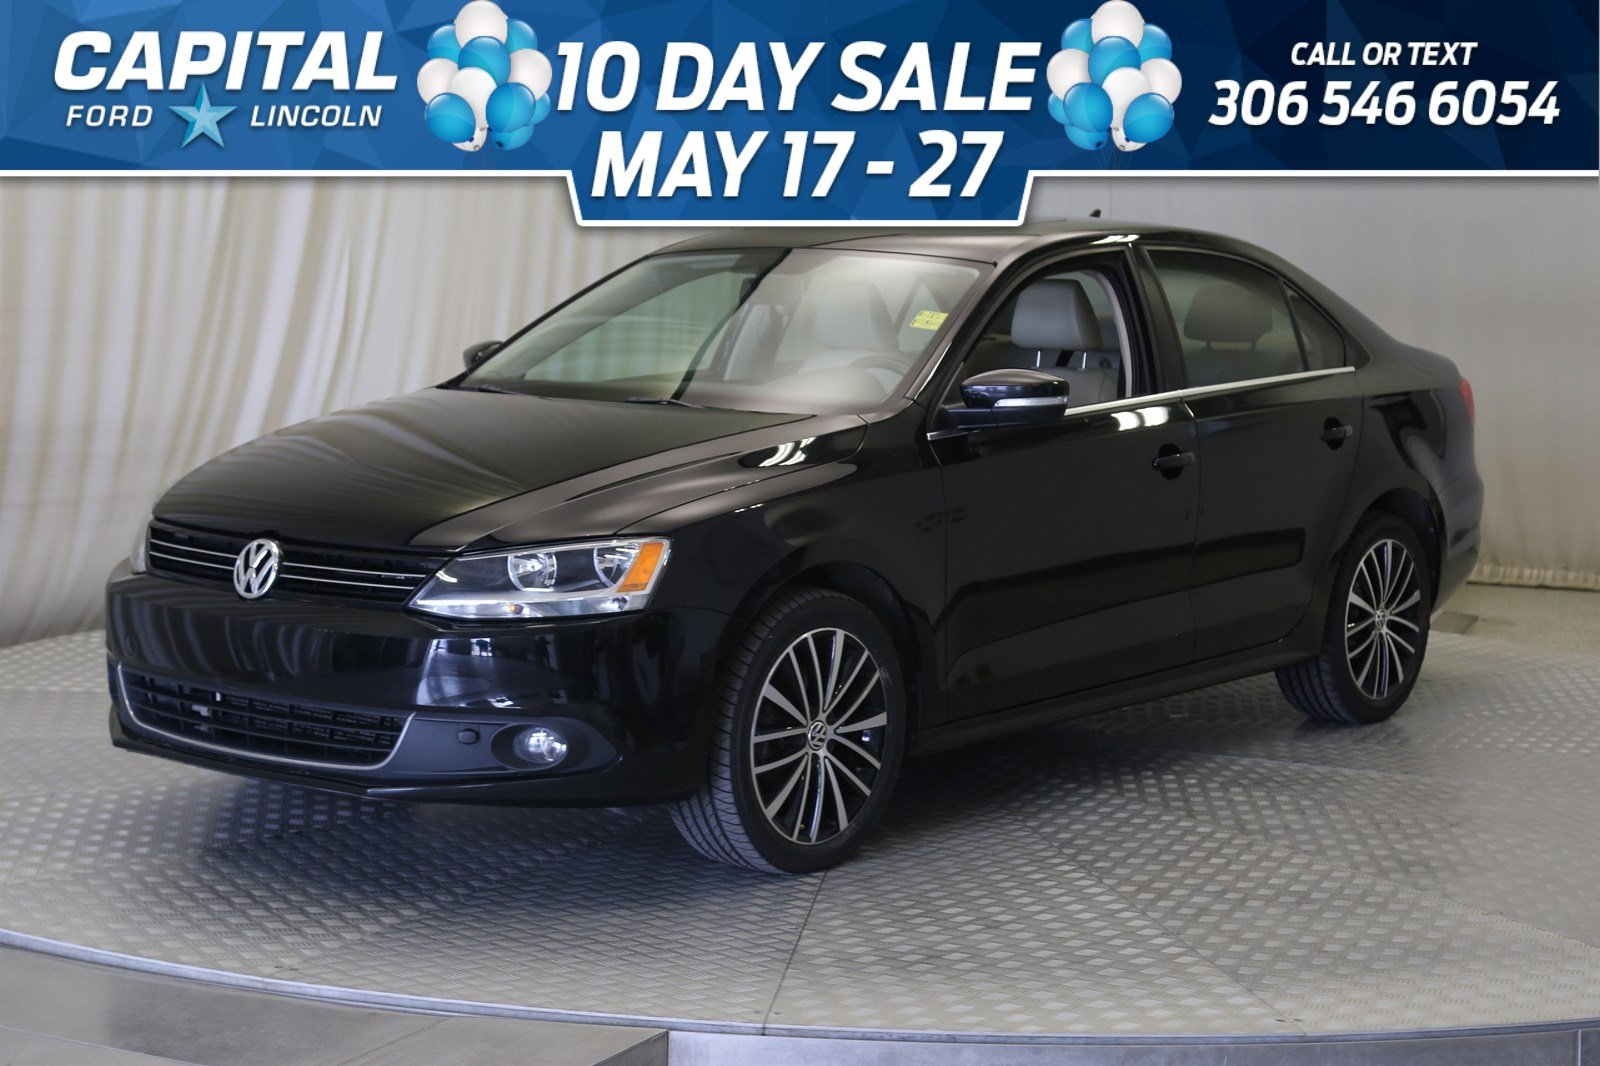 Pre-Owned 2013 Volkswagen Jetta Sedan Highline | Diesel Leather | Sunroof |